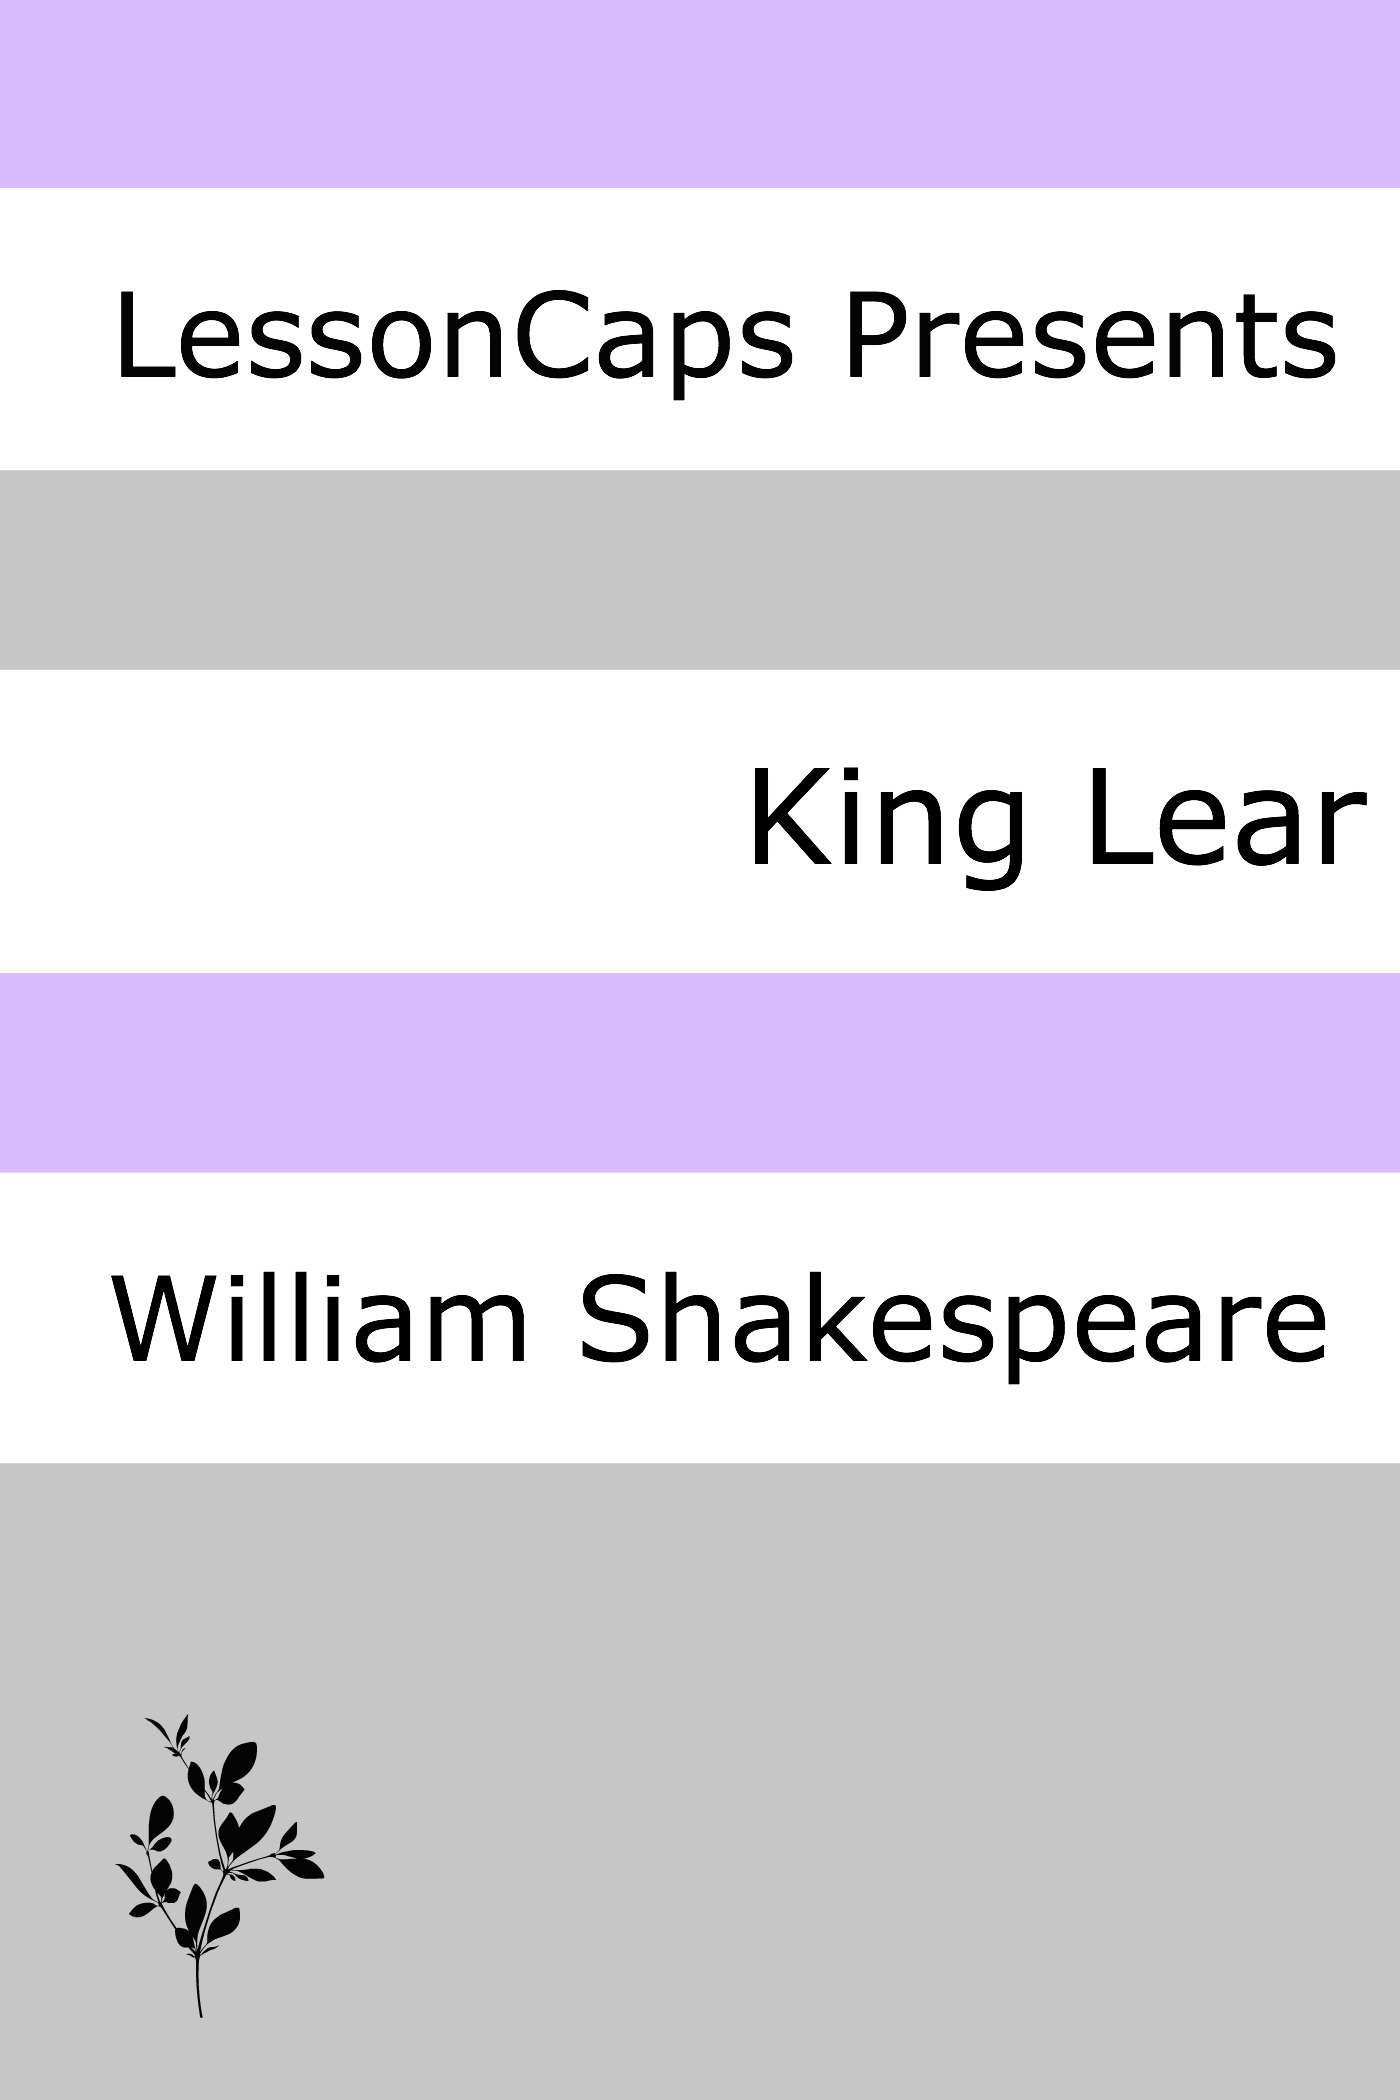 King Lear: Teacher Lesson Plans